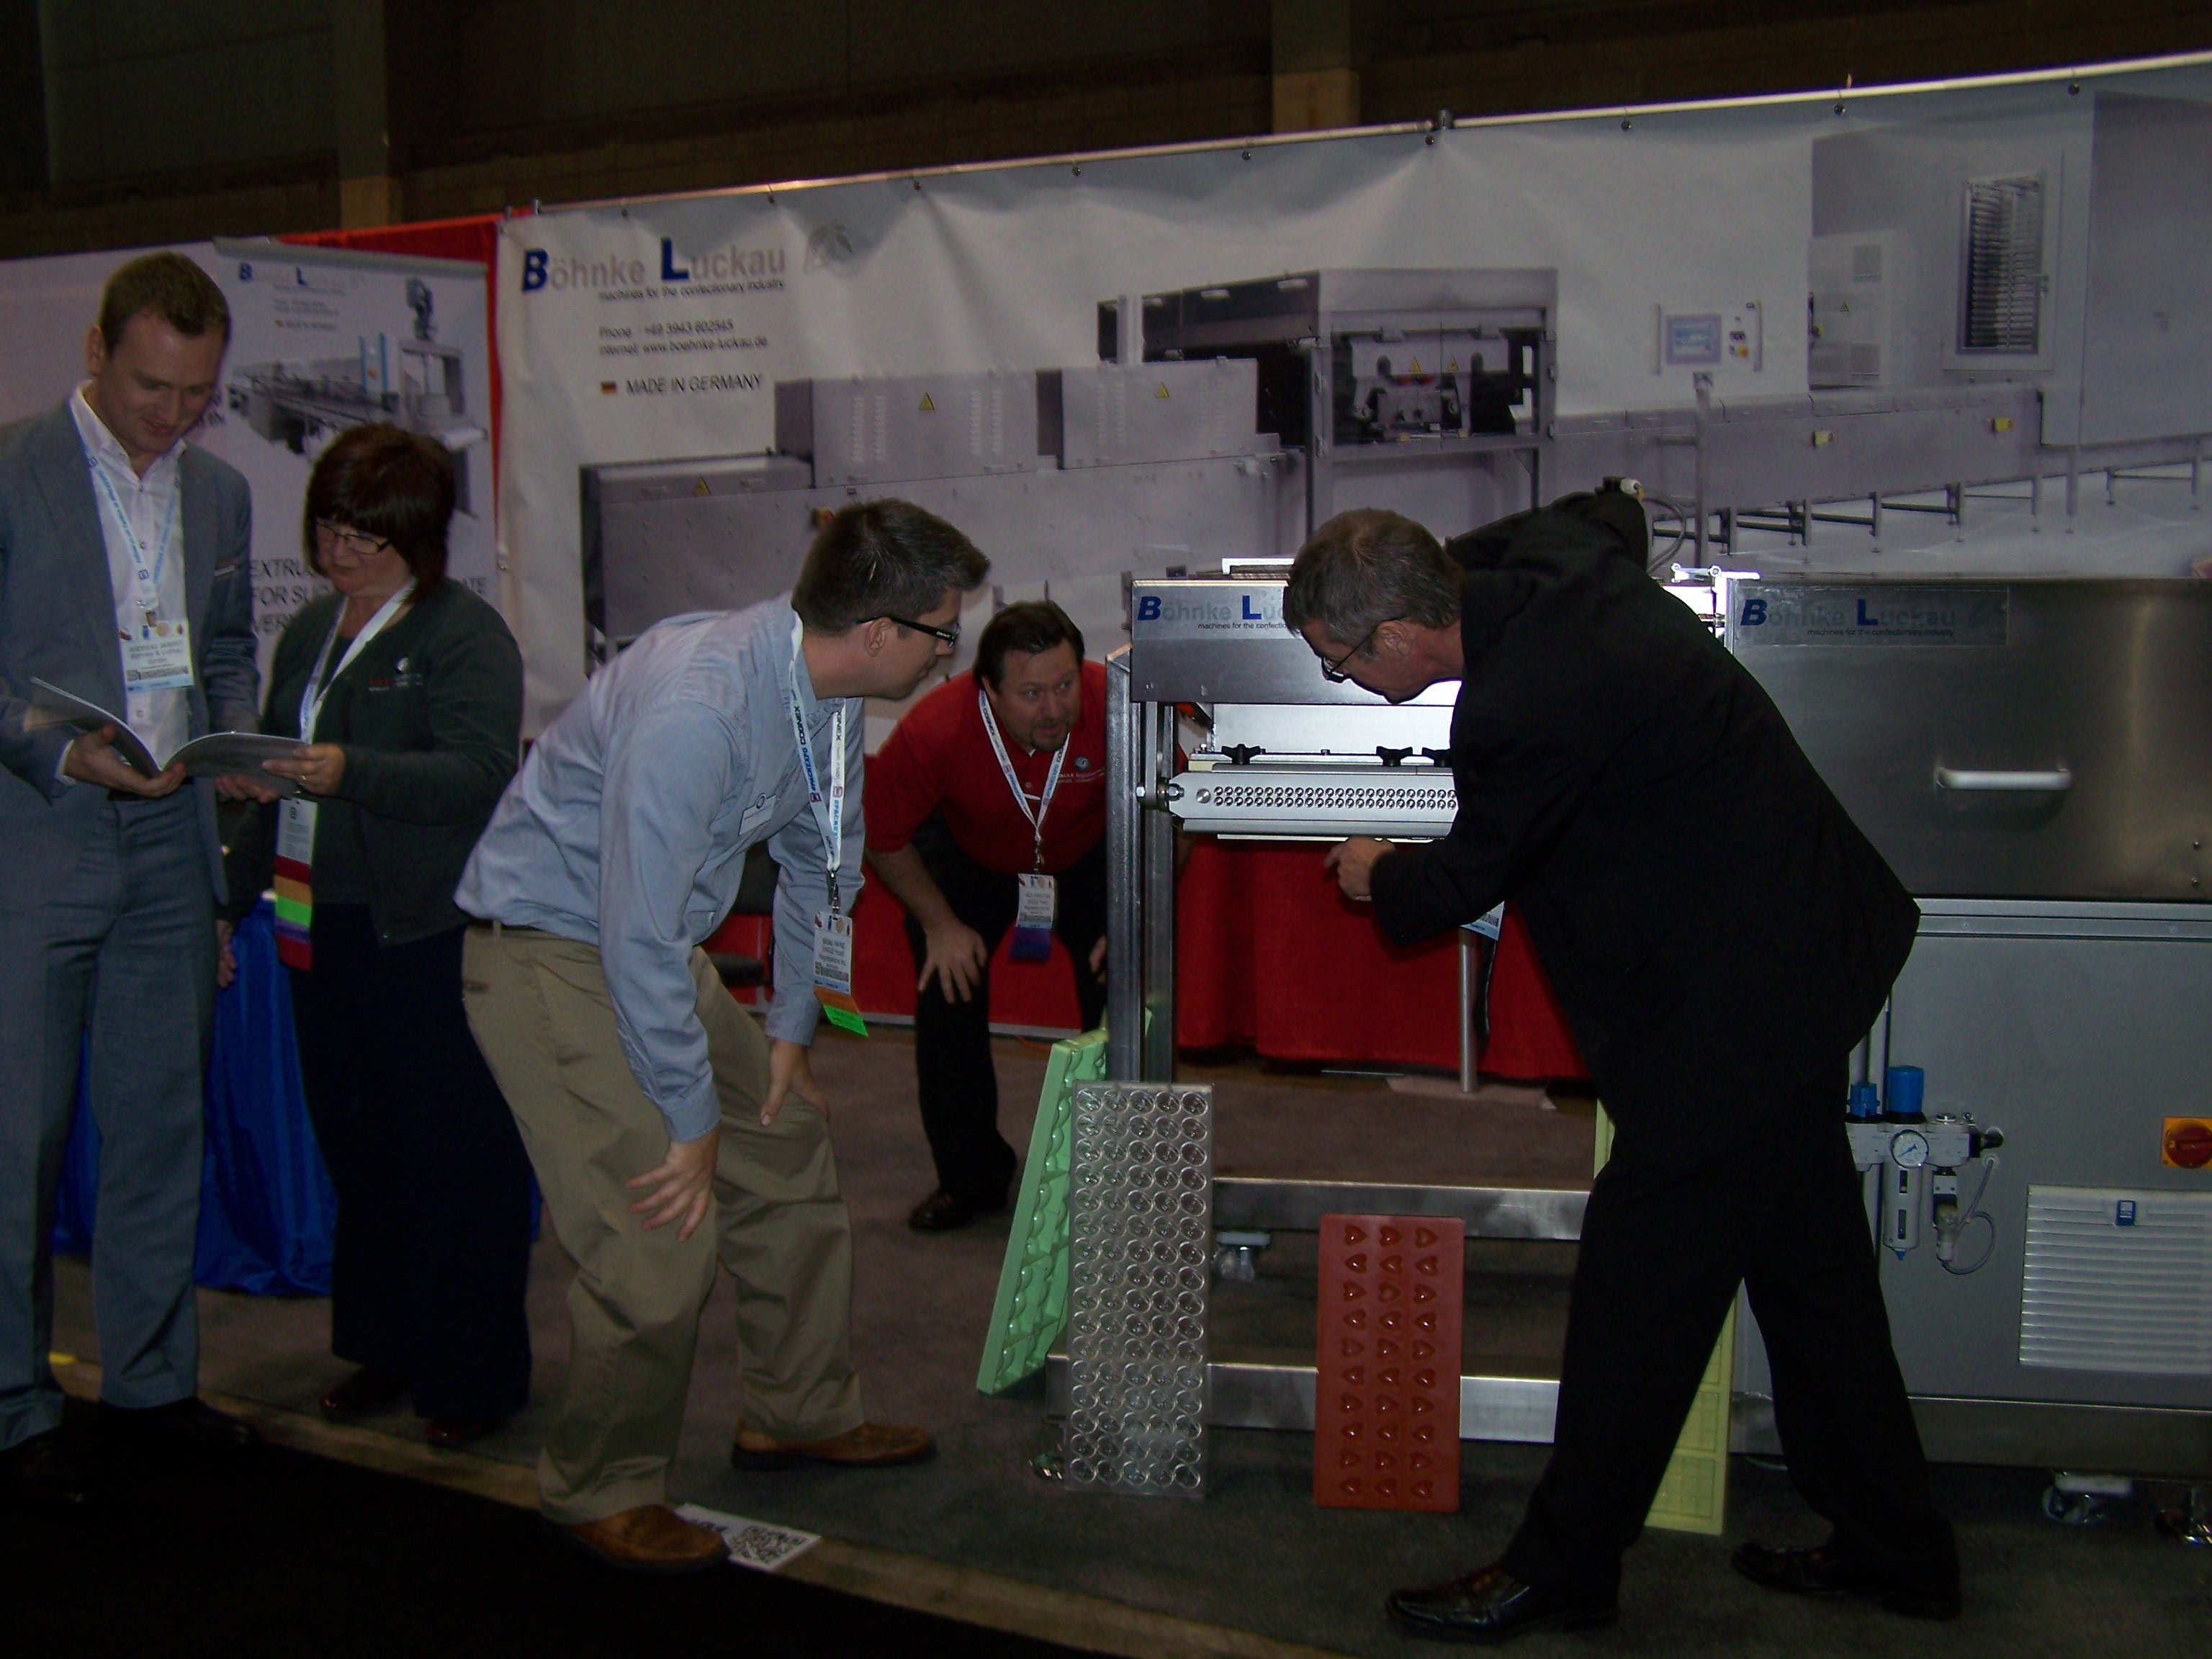 Böhnke & Luckau at the exhibition PackExpo 2012 USA